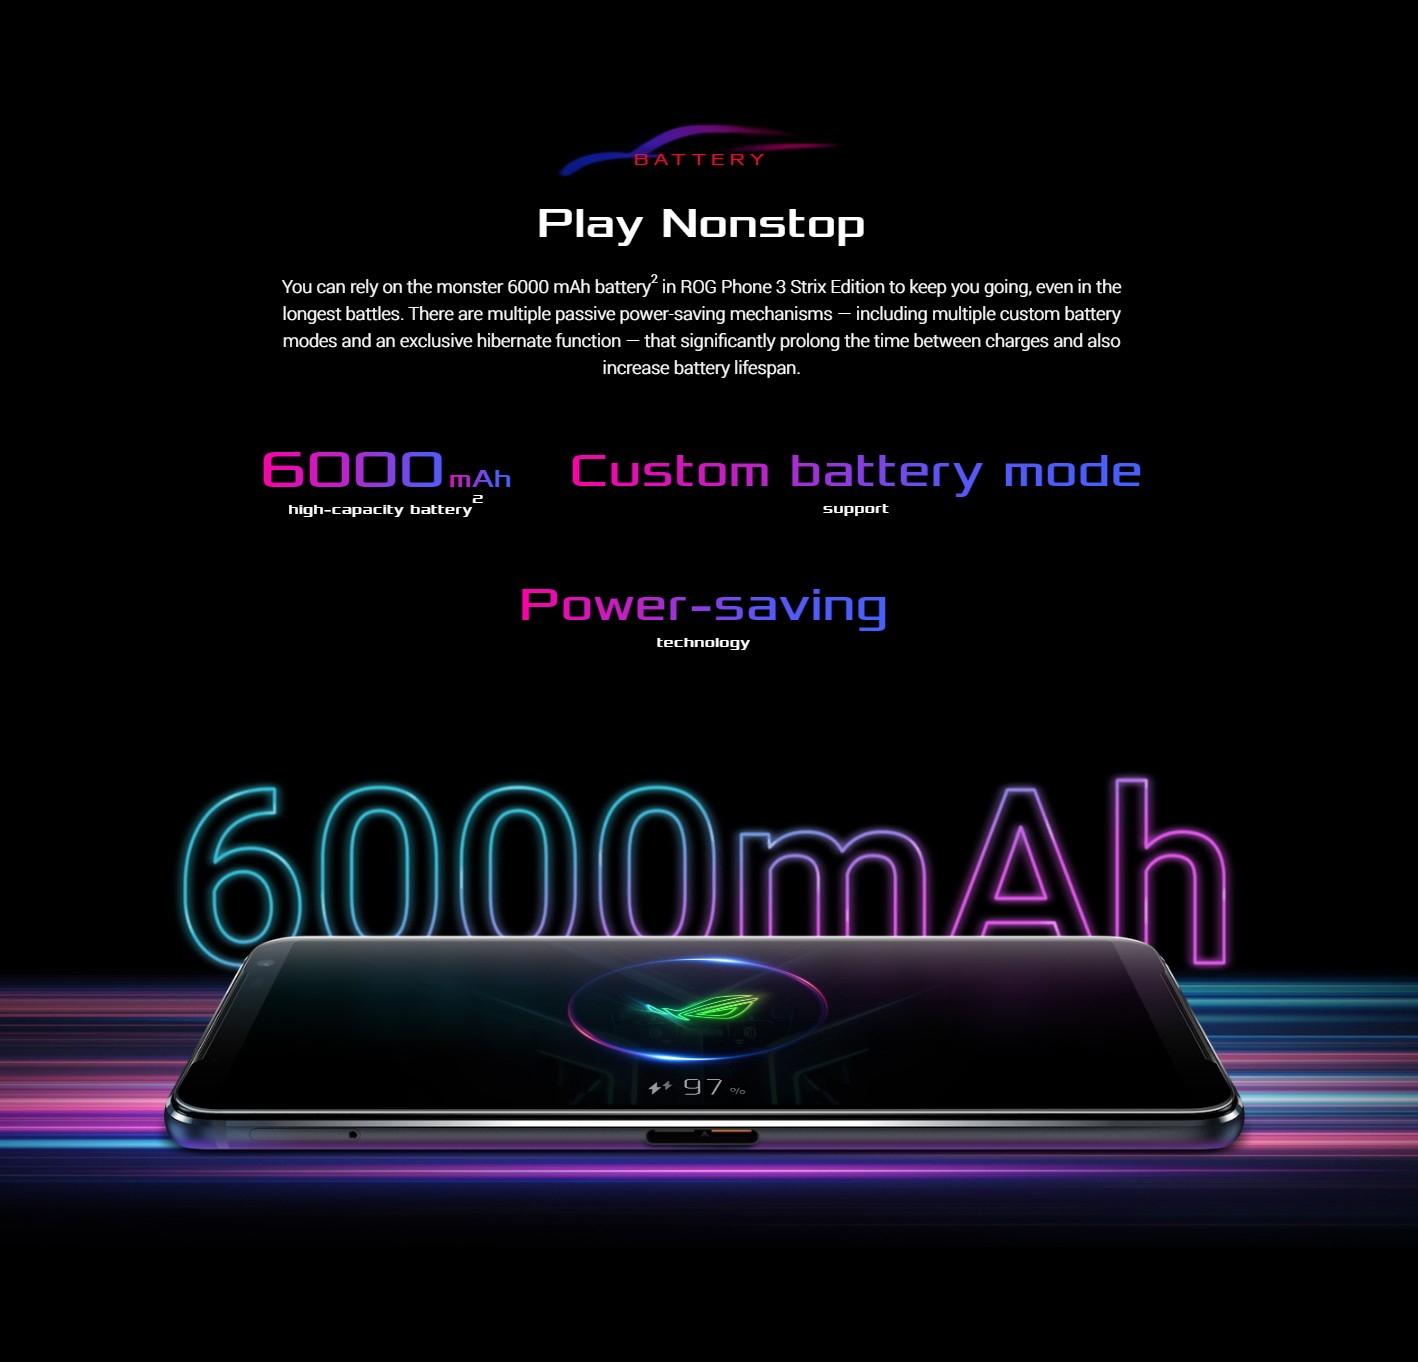 ASUS ROG Phone 3 Gaming 5G Smartphone Battery